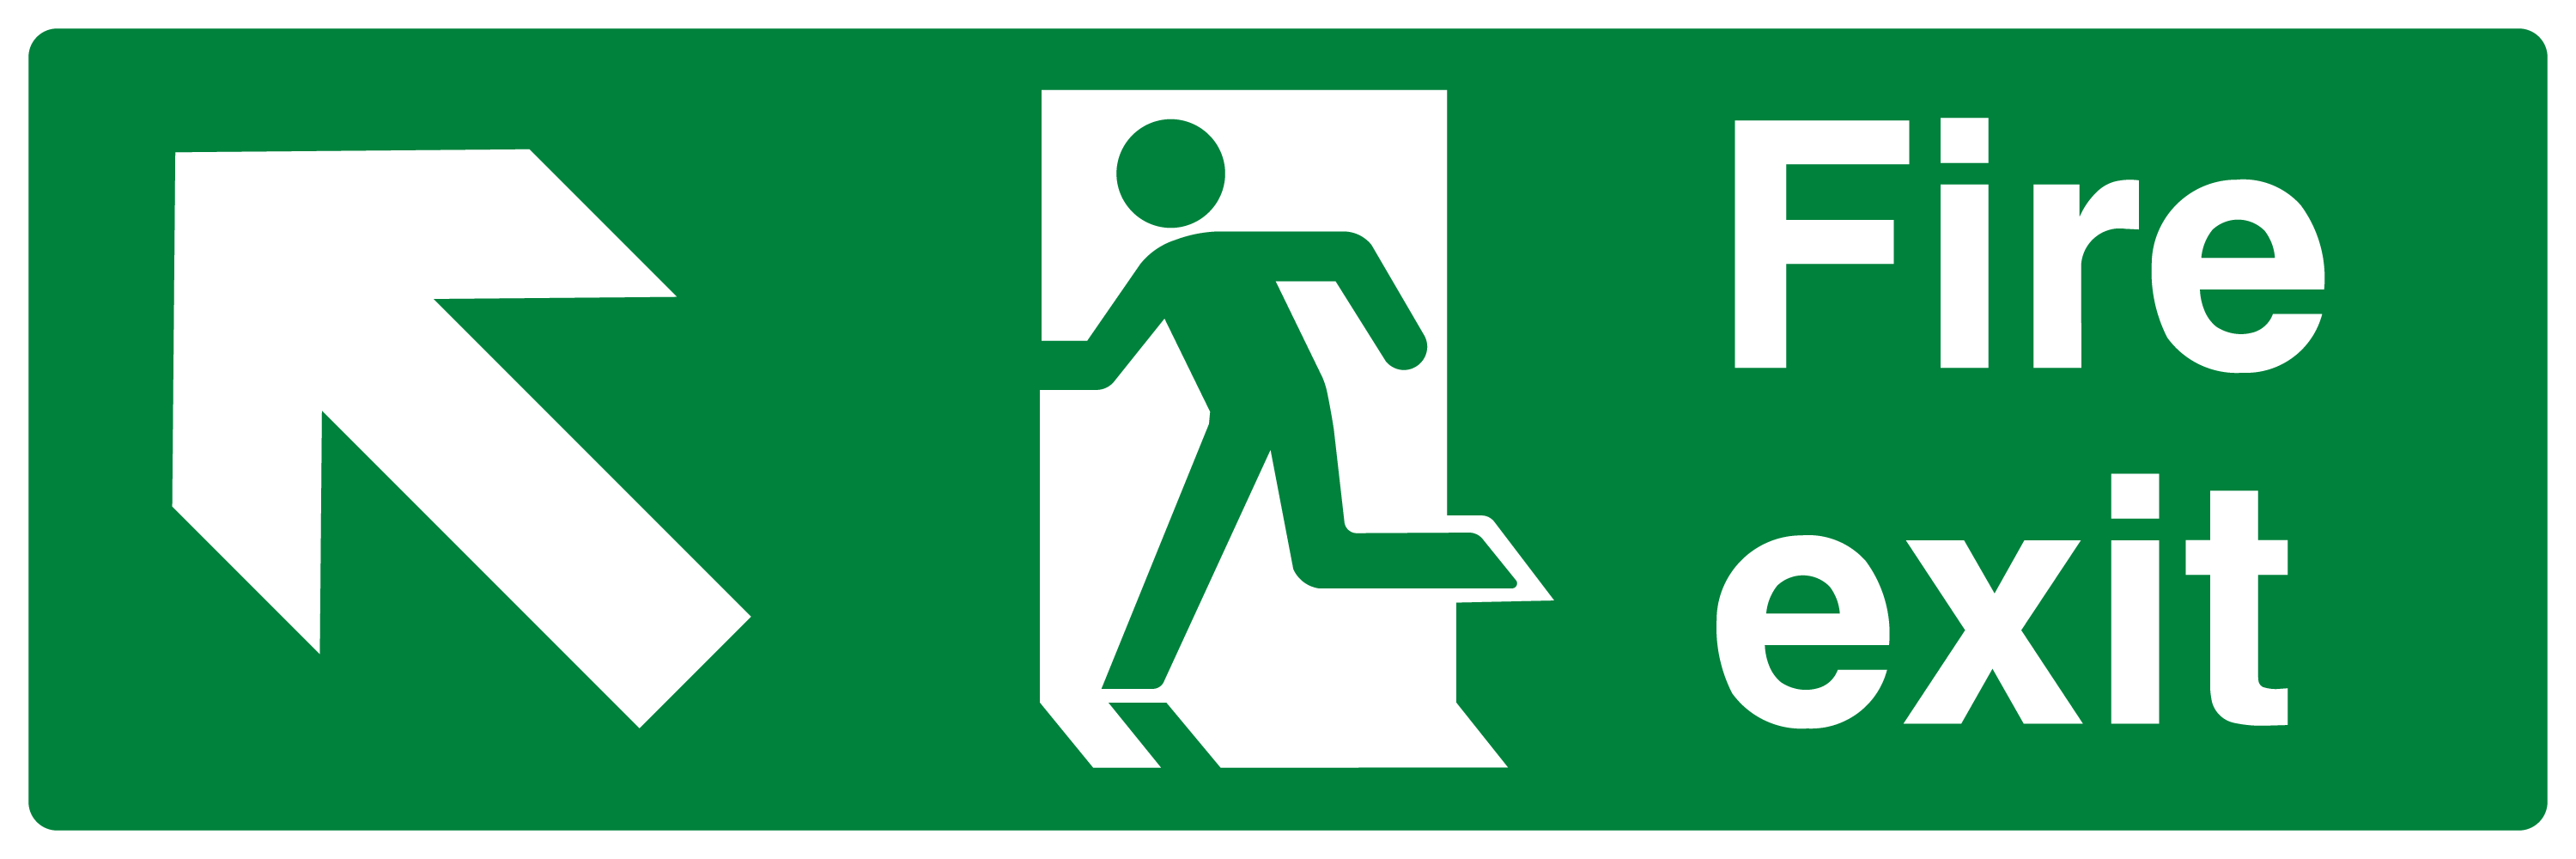 Fire Exit Running Man Arrow Up Left